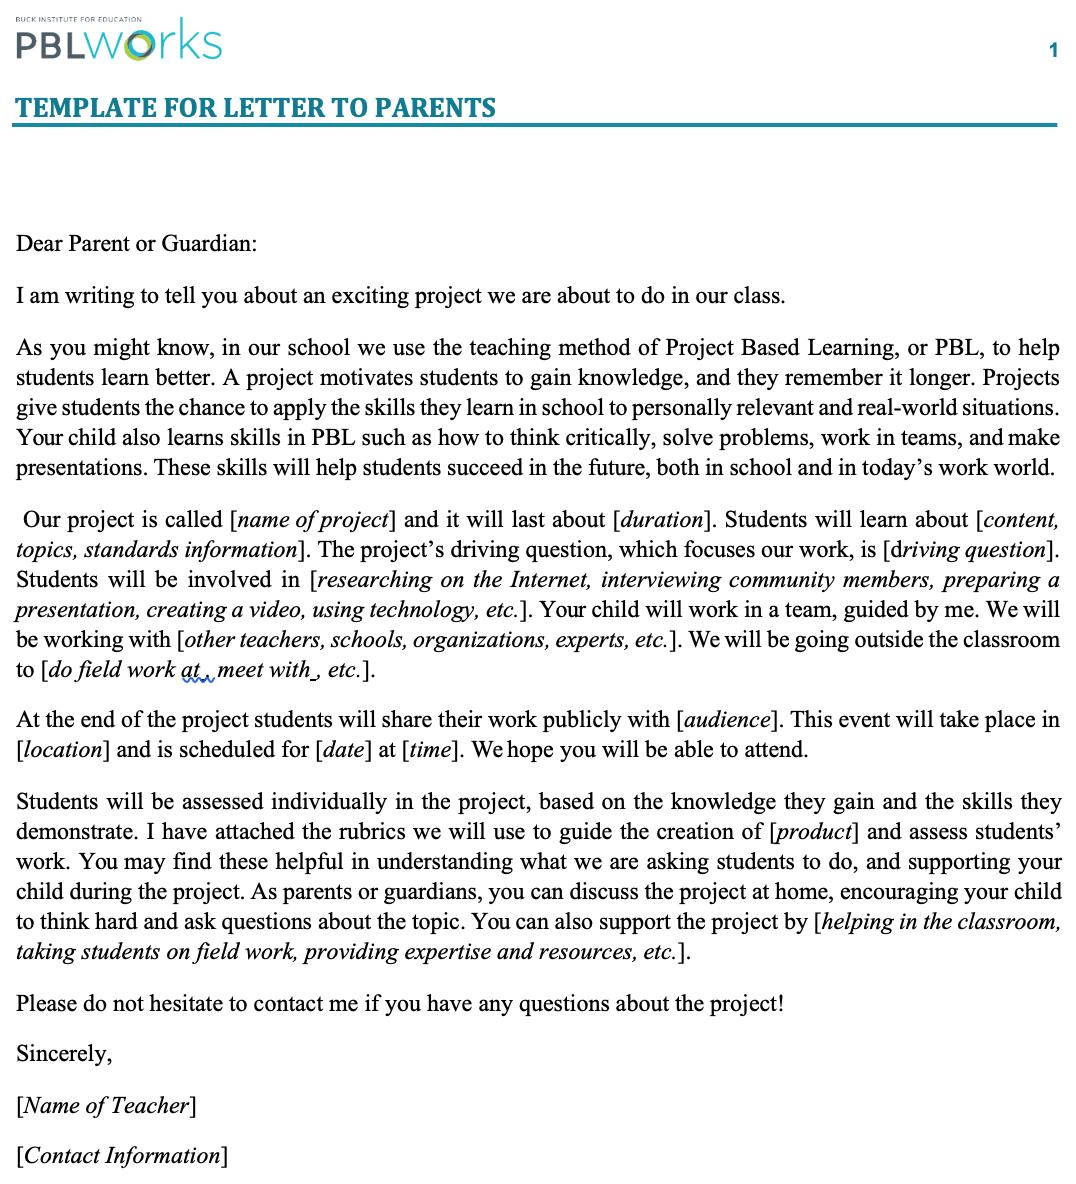 Want to include parents of students on your Project Based Learning journey? Download our FREE Letter to Parents Template! https://bit.ly/2UDf33L #PBL #HQPBL #PBLparents #edu #PBLchat #edchat